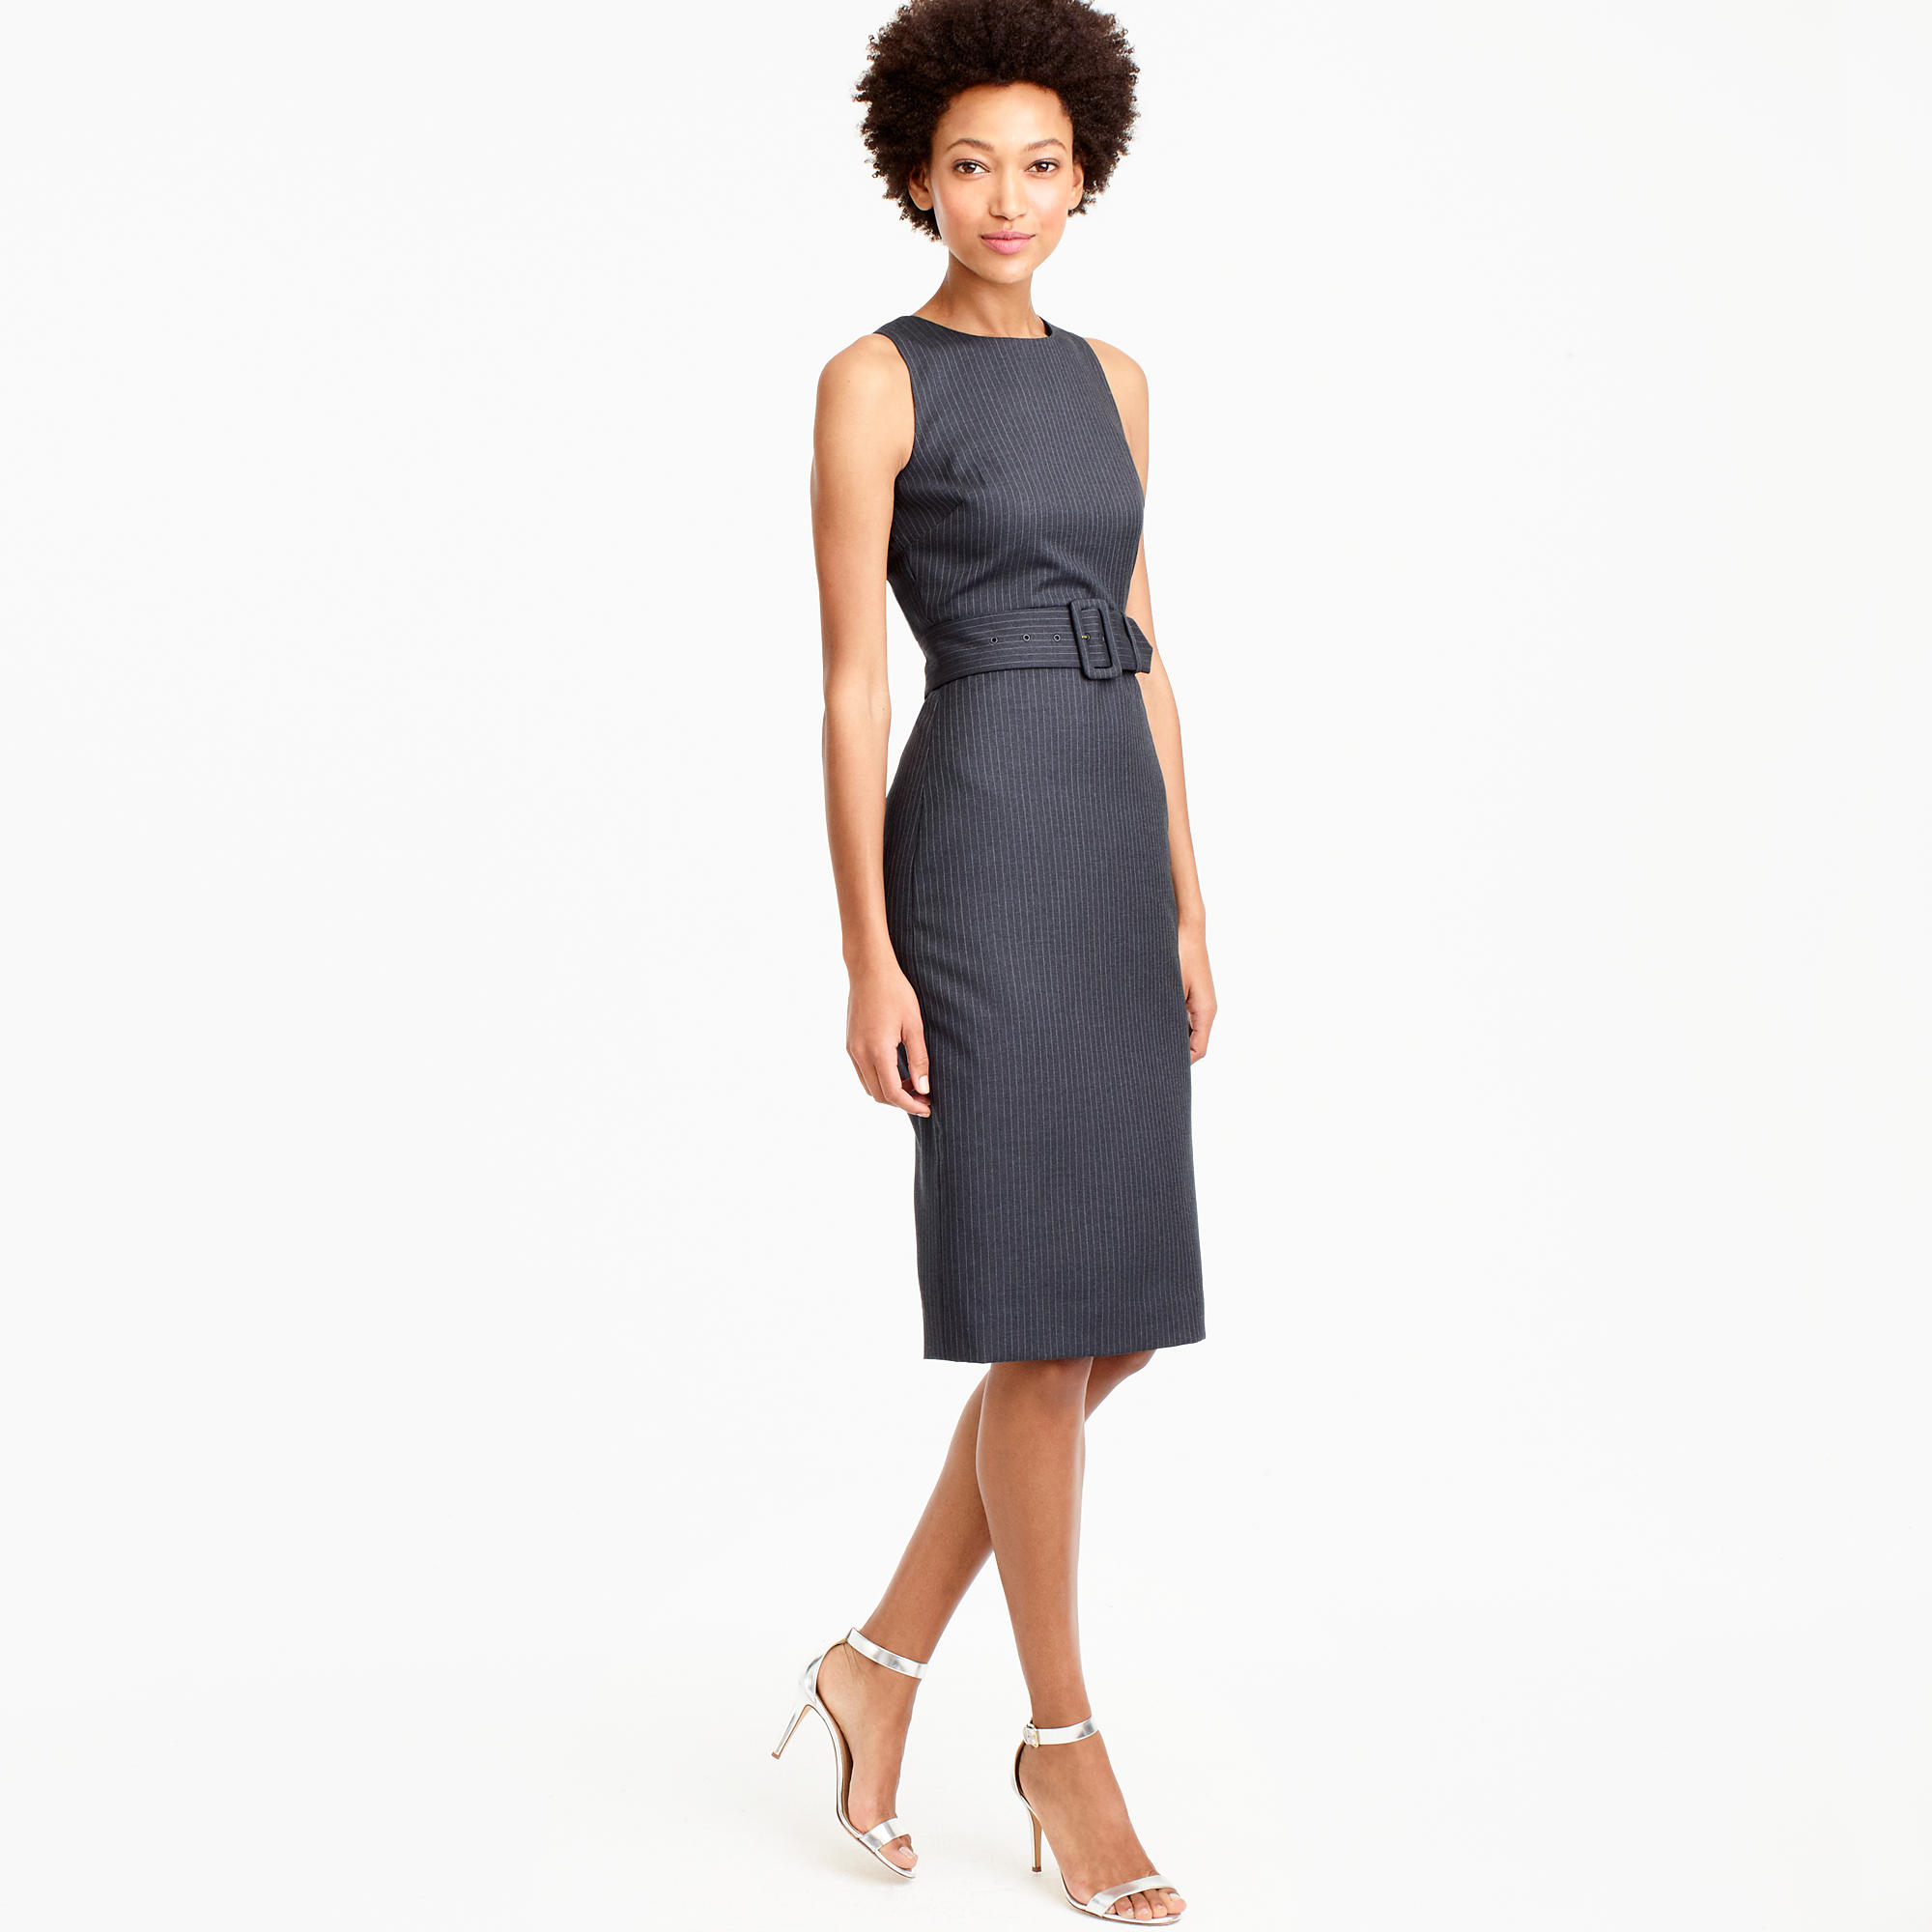 Women&-39-s Work Apparel : Women&-39-s Wear To Work Clothing - J.Crew